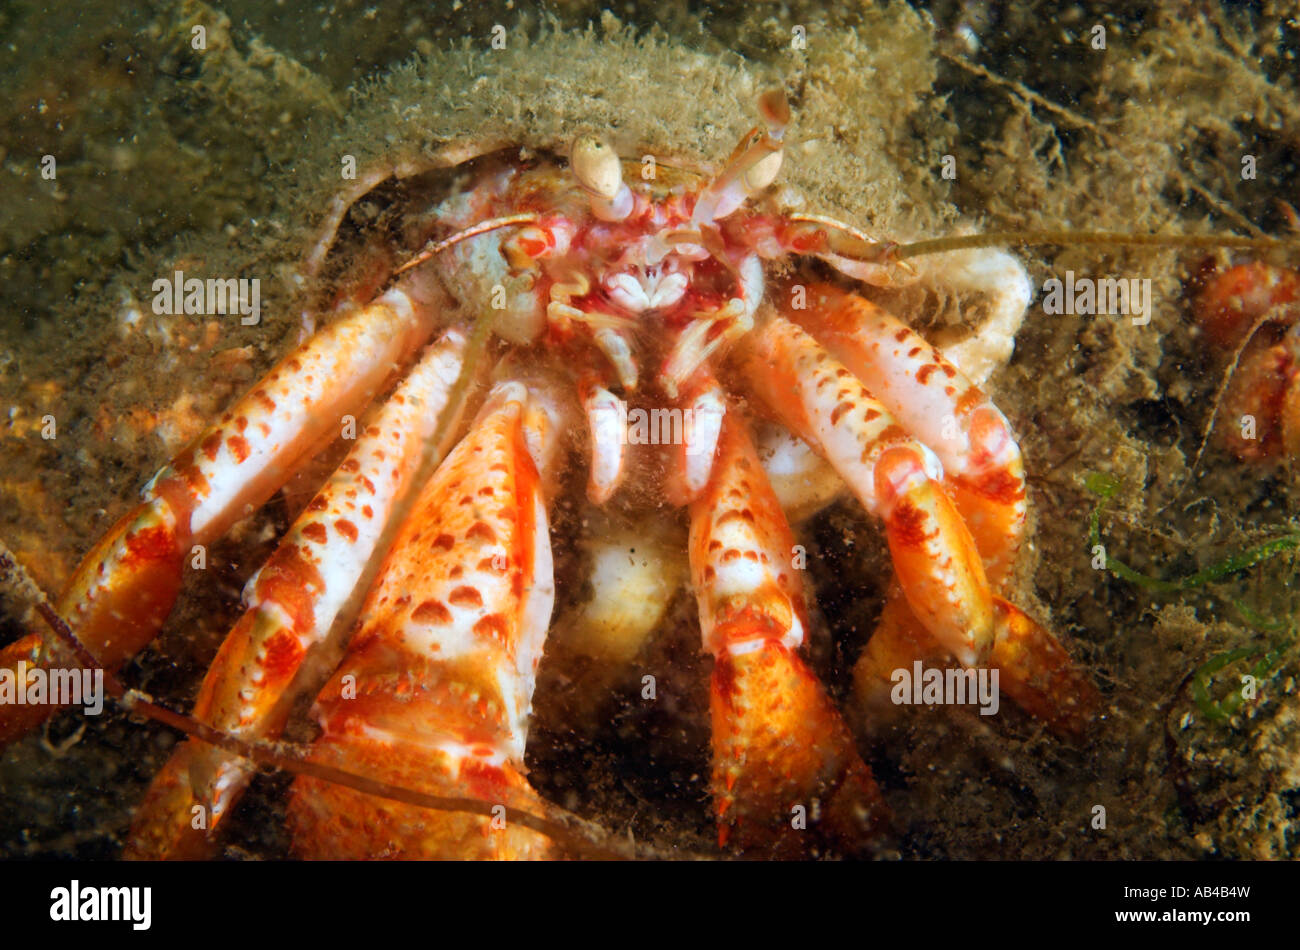 Closeup Hermit crab Pagurus bernhardus living underwater in whelk shell - Stock Image